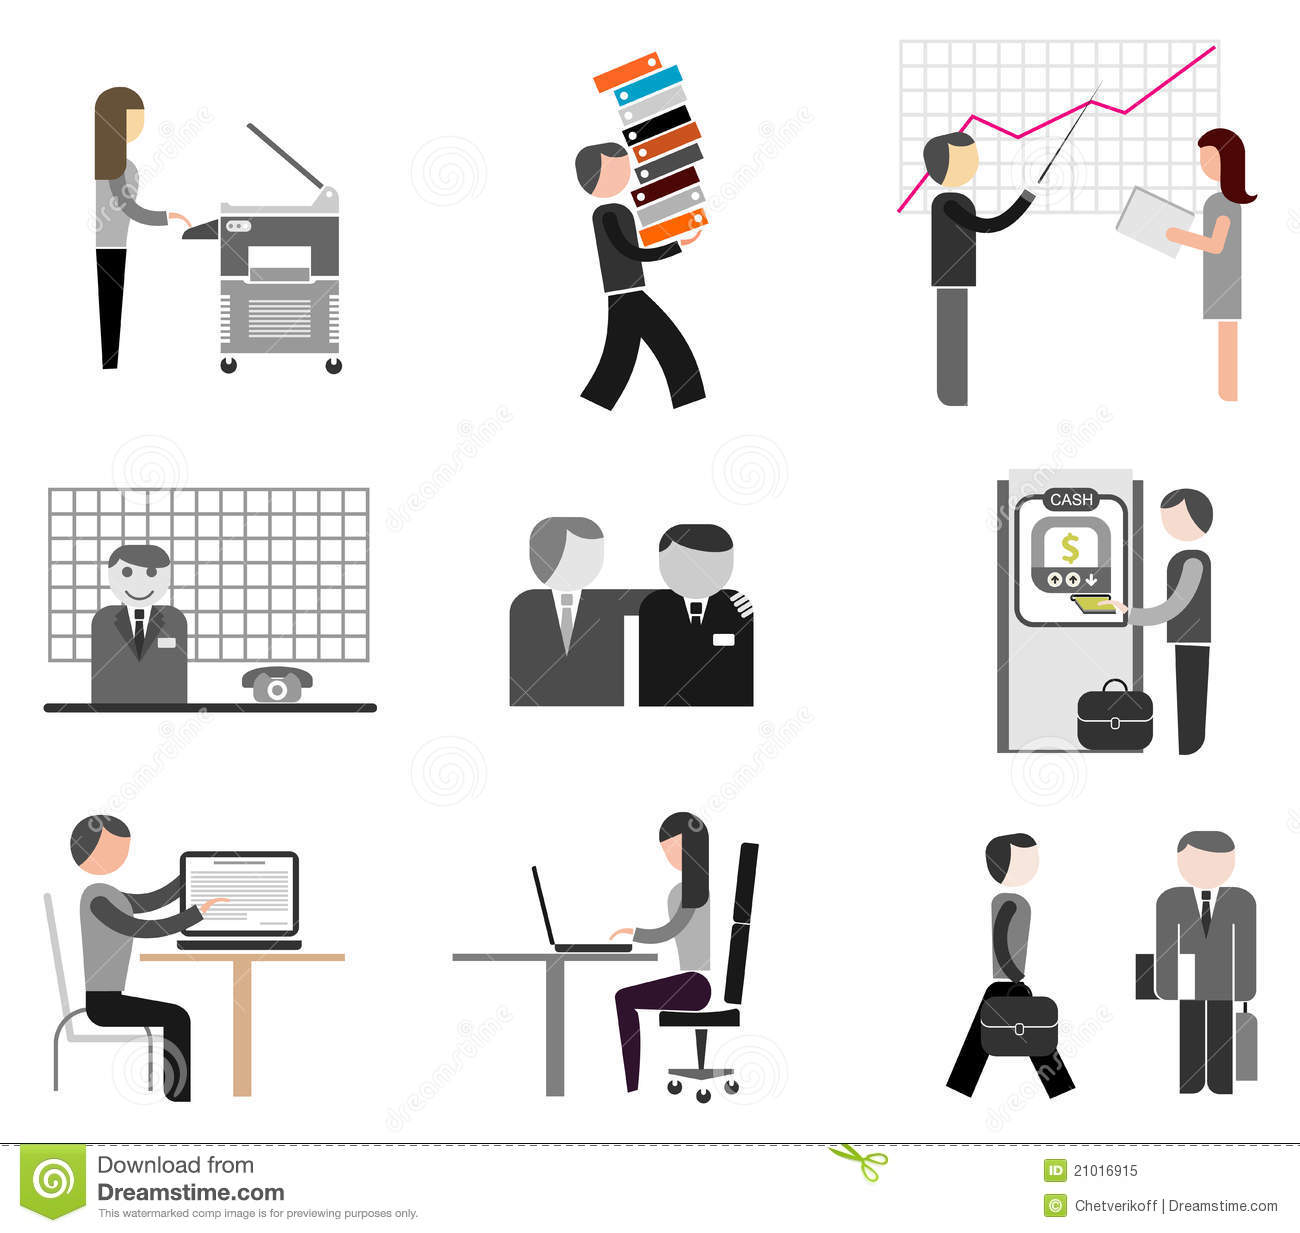 Royalty Free Stock Photo: Businesspeople - office icons. Image ...